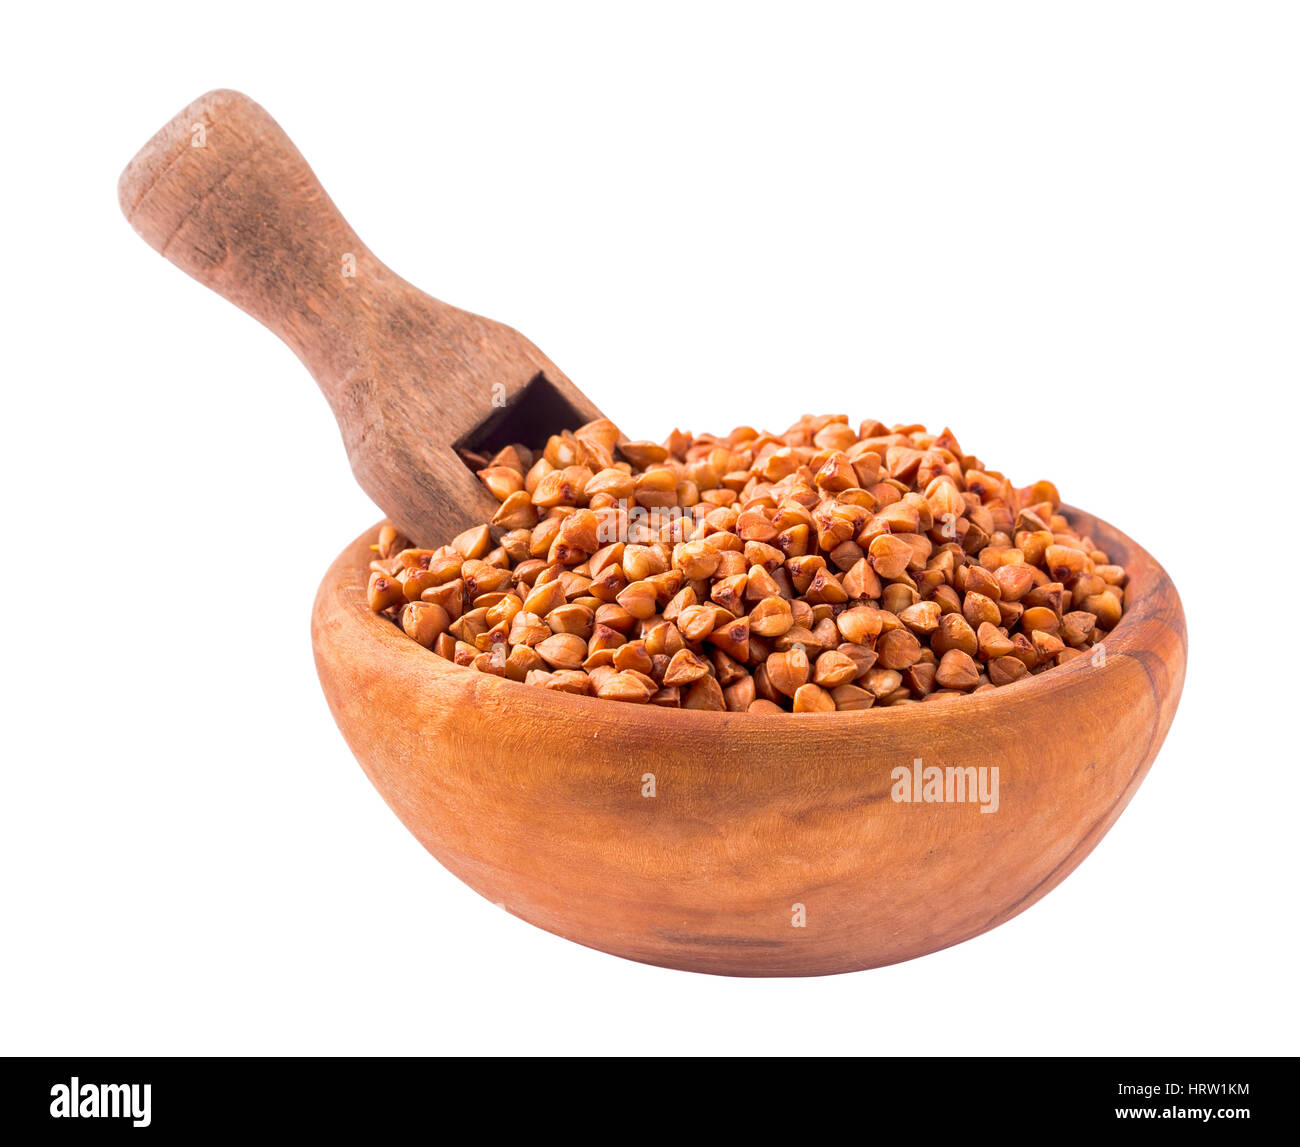 Wooden bowl of uncooked buckwheat groats with scoop. Isolated with clipping path - Stock Image